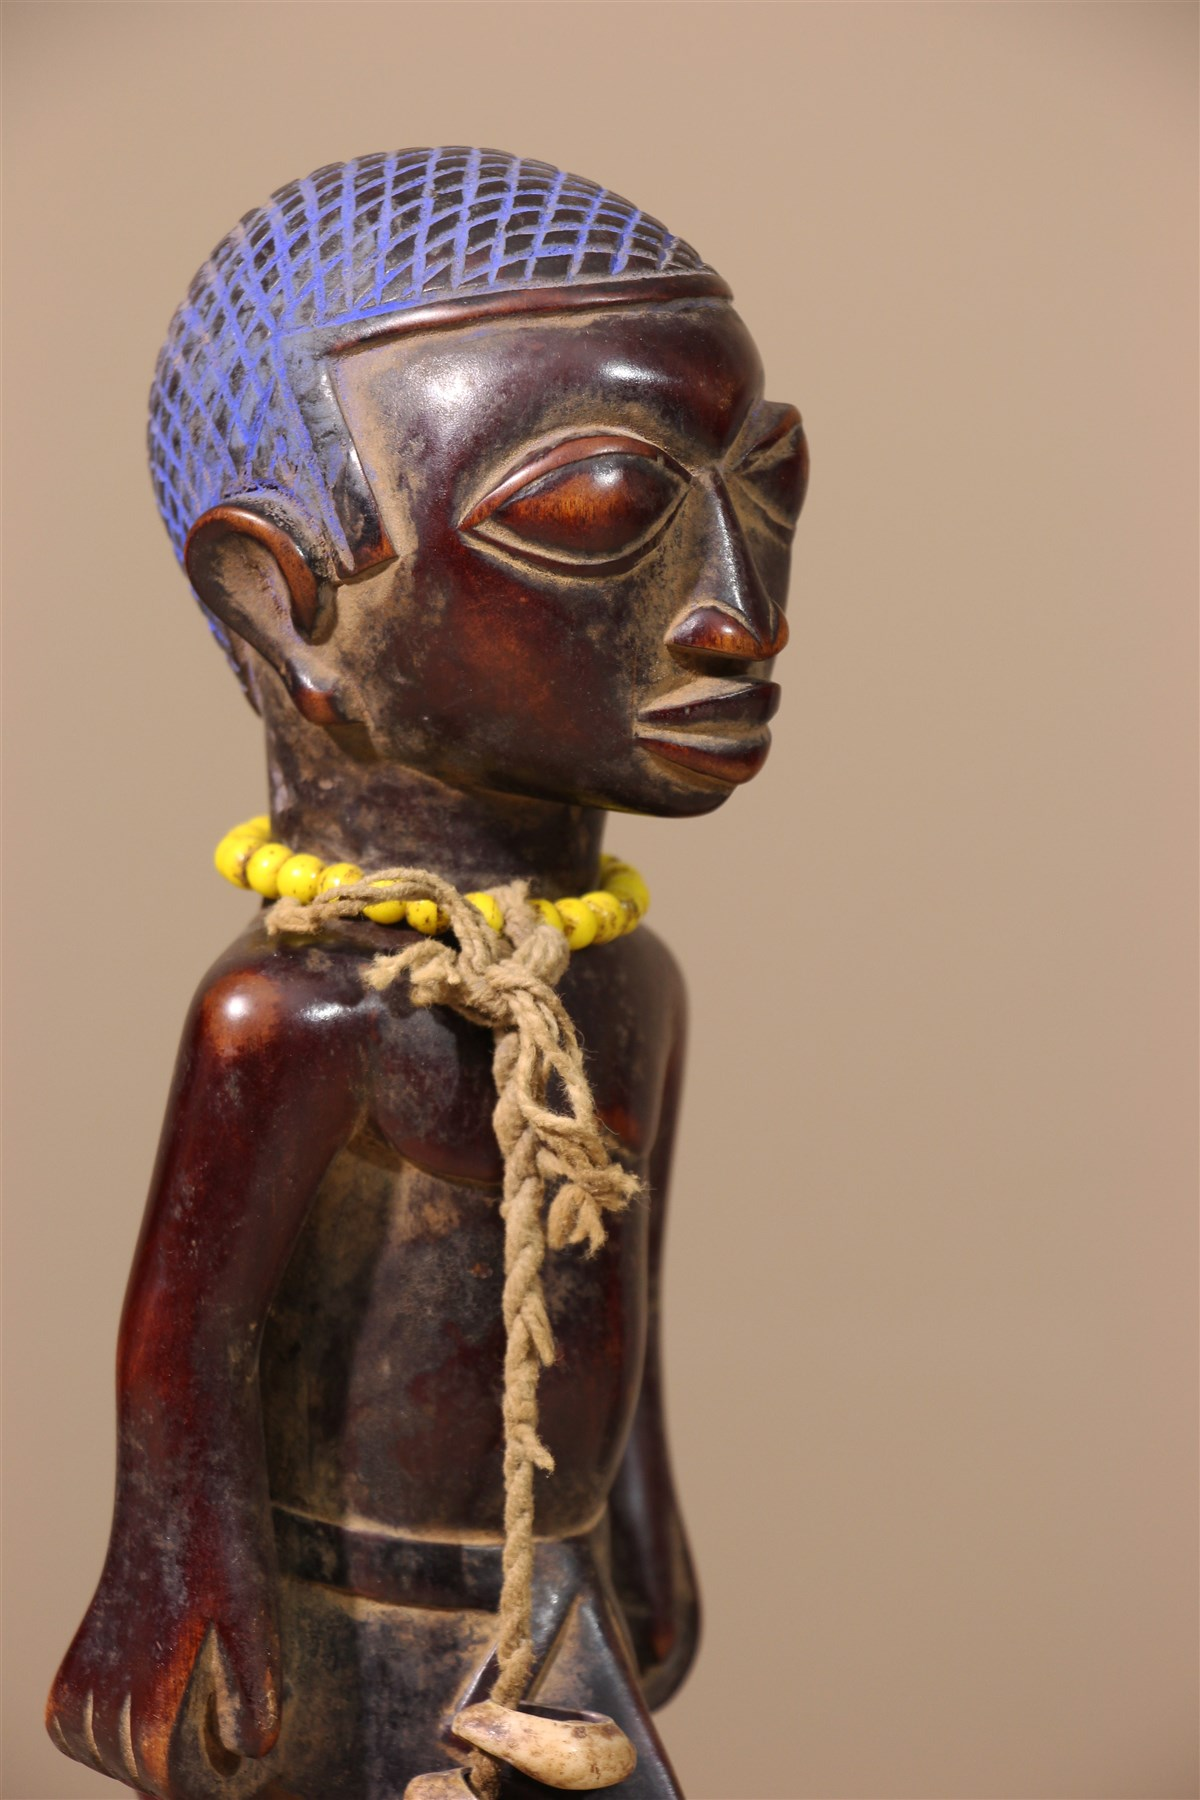 Statuette Yoruba Ibedji - Déco africaine - Art africain traditionnel